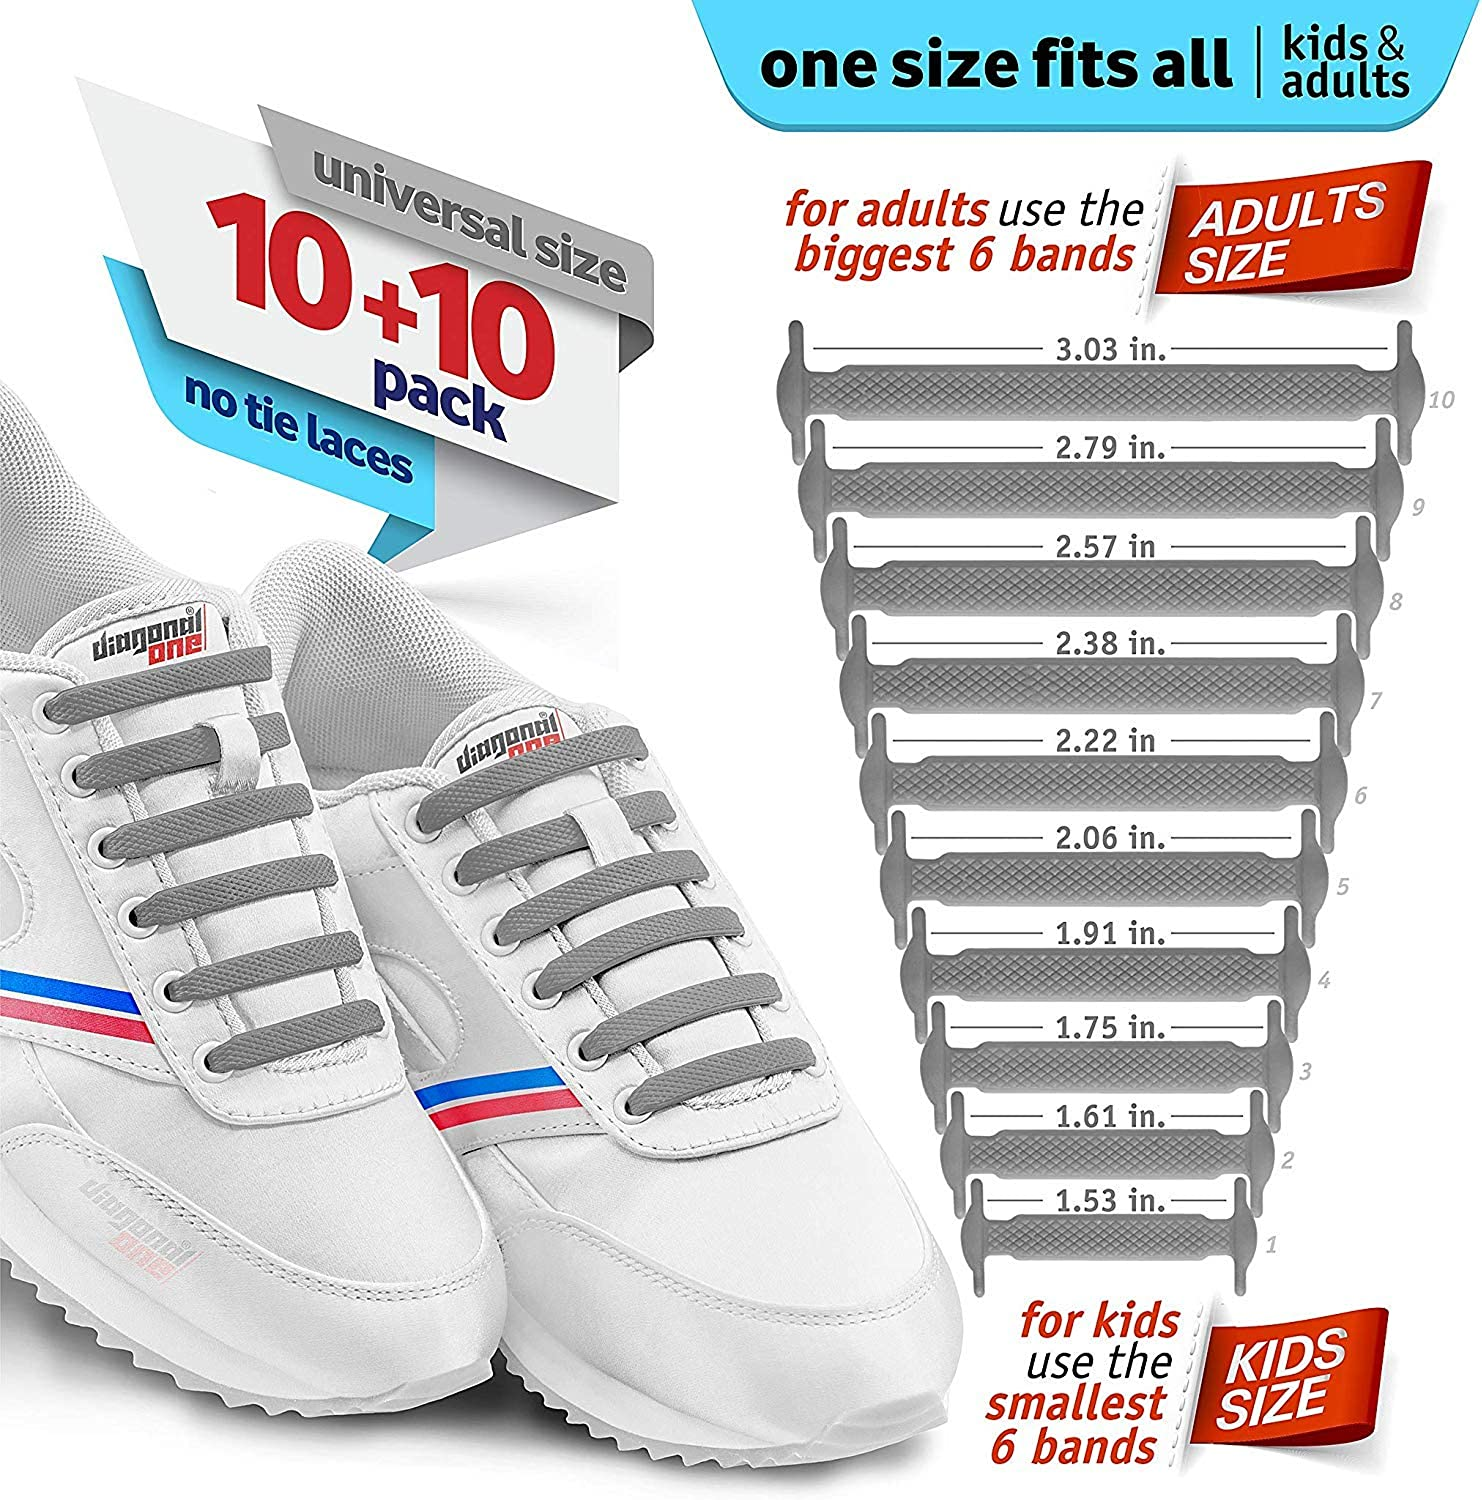 20 Slip On Tieless Flat Silicon Sneakers Laces Elastic Silicone Shoe Laces to Replace Your Shoe Strings DIAGONAL ONE No Tie Shoelaces for Kids and Adults